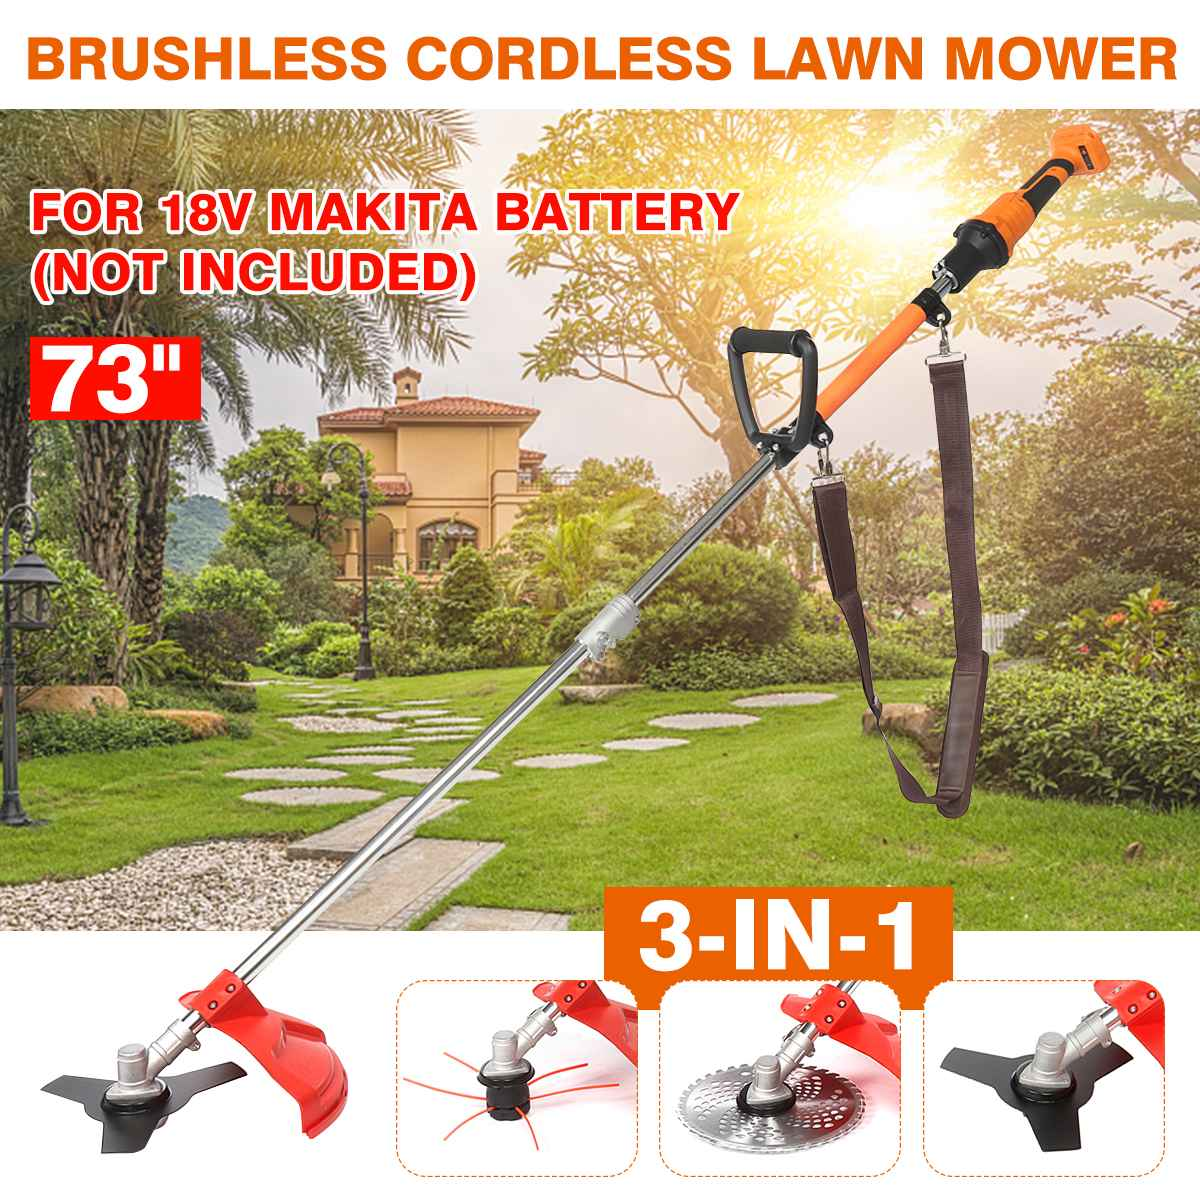 Trimmer Lawn MIN Mowerfor Adjust Cutter Speed 18V Backpack Pole 1 Grass 3 Brushless 73inch Battery Cordless Mower 3 7500R IN Makita